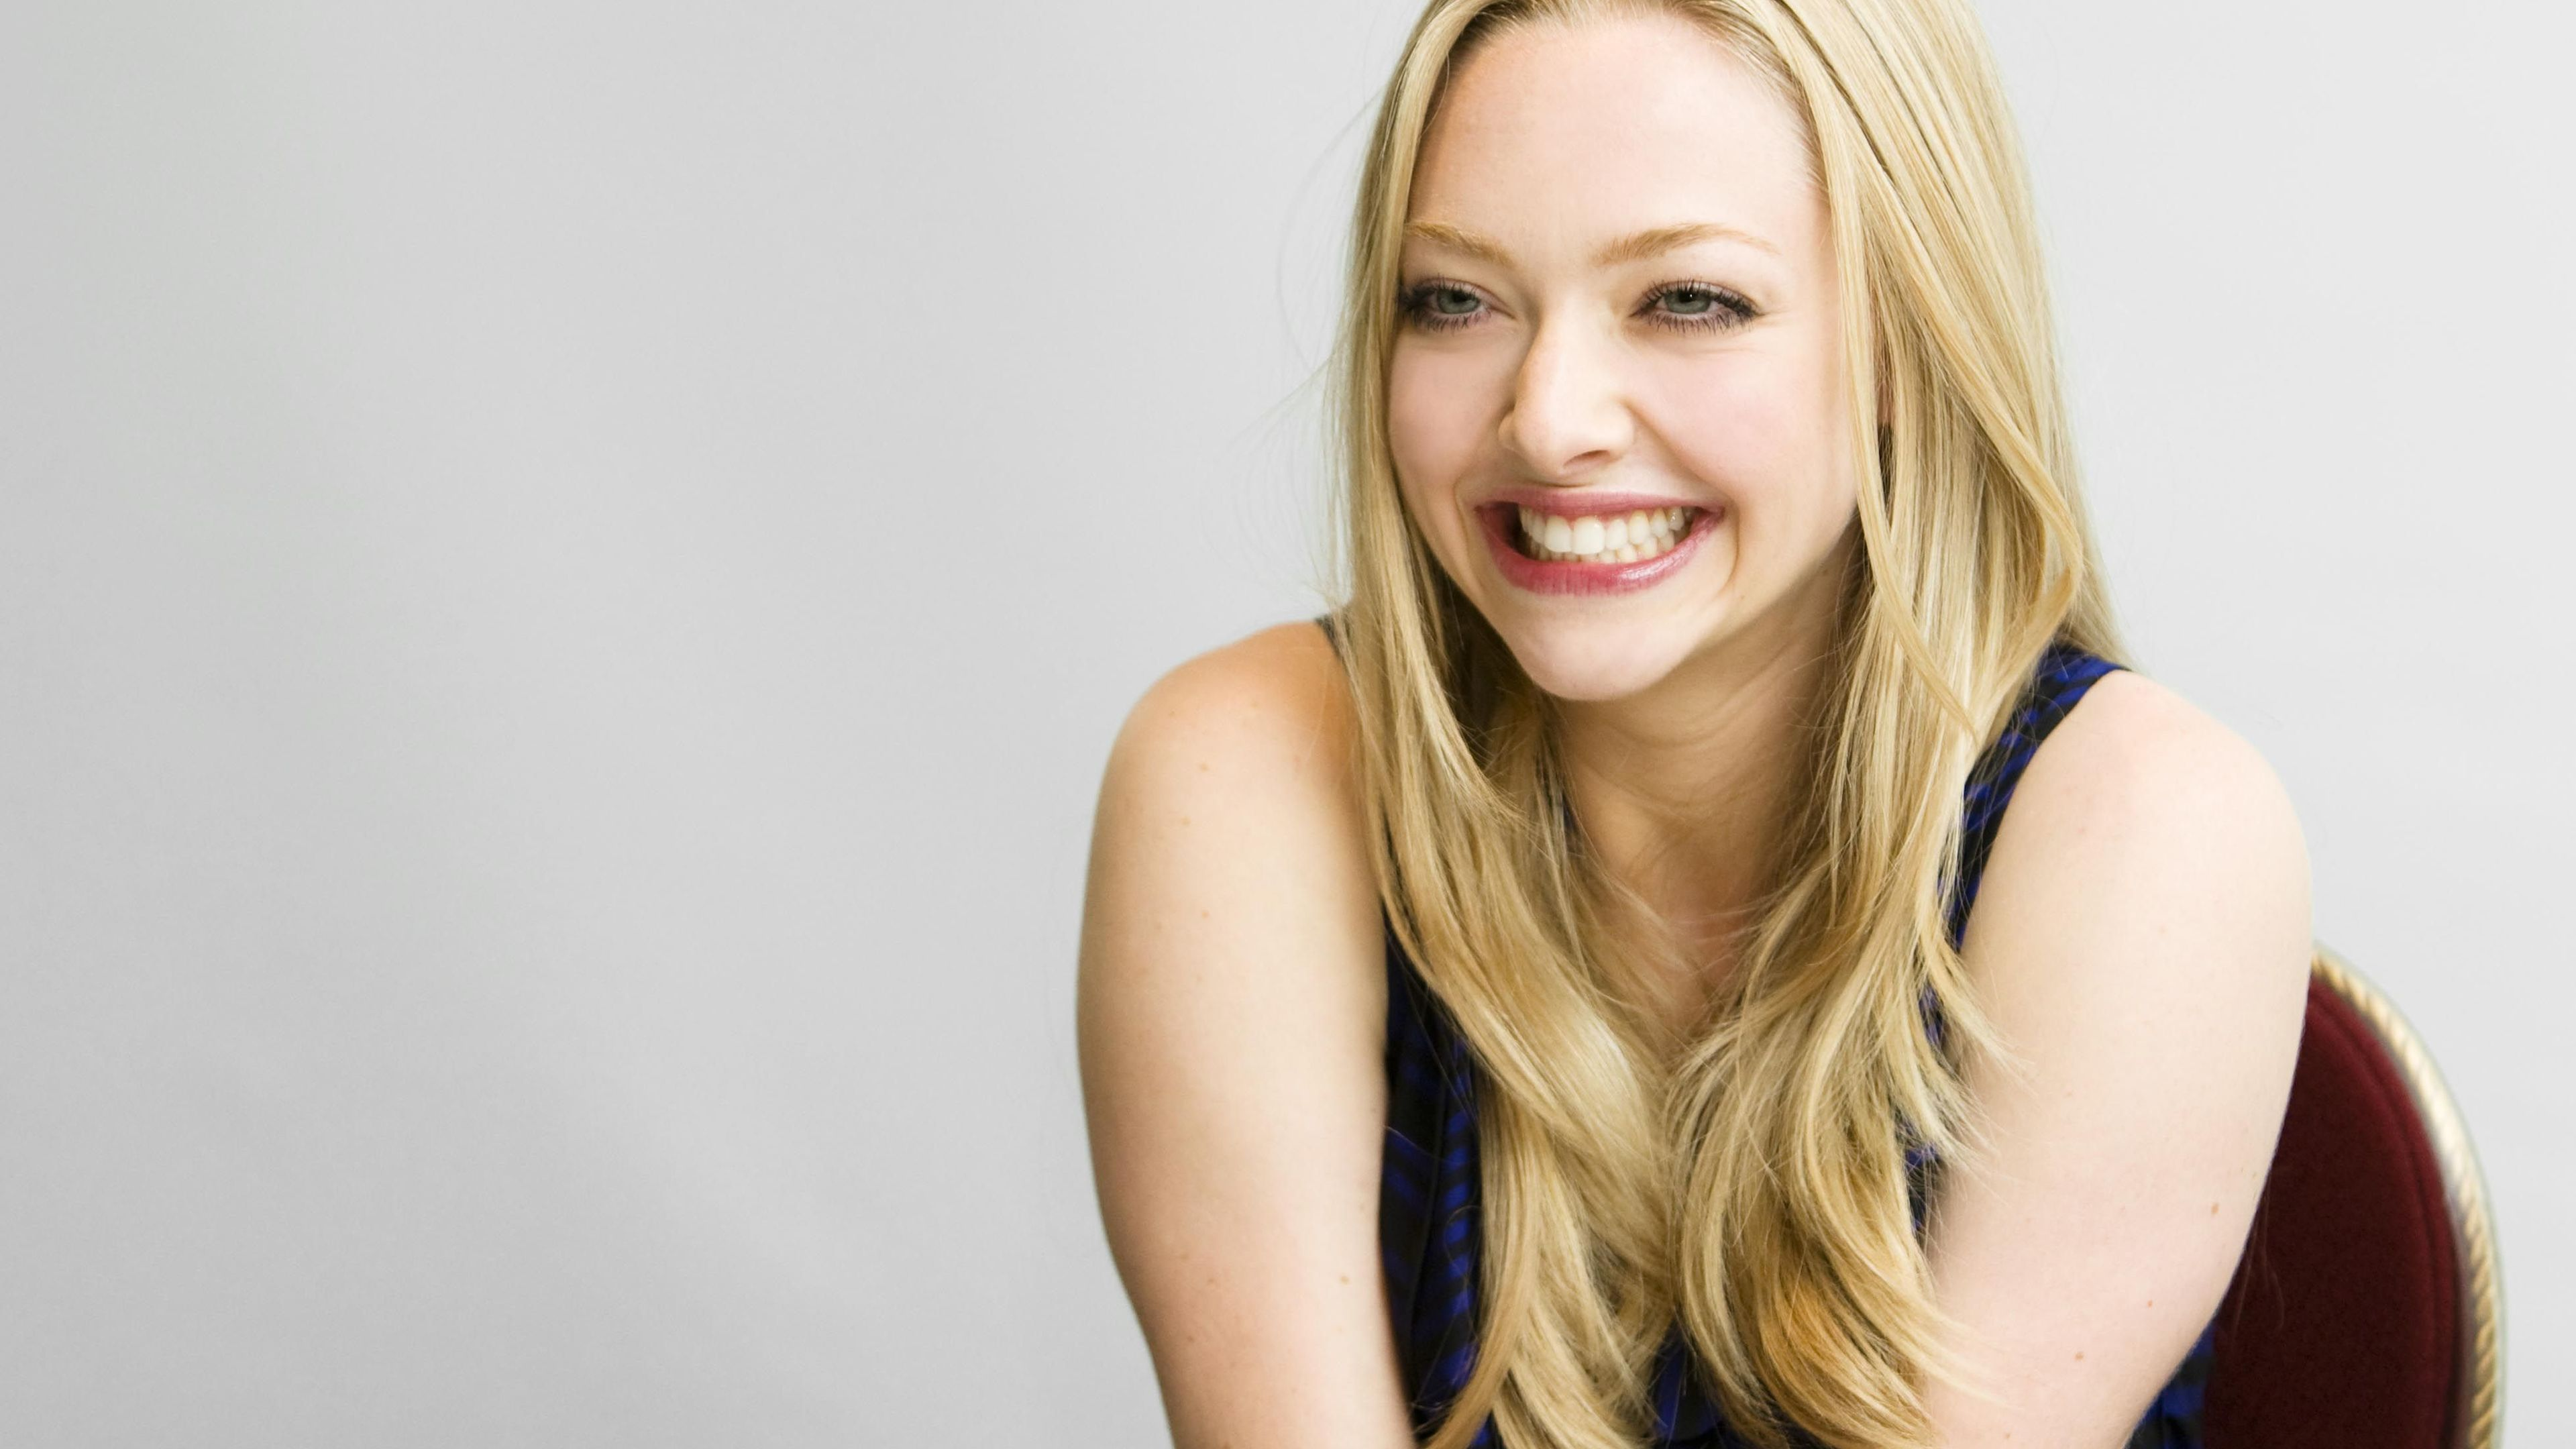 4k amanda seyfried 1536862926 - 4k Amanda Seyfried - hd-wallpapers, girls wallpapers, celebrities wallpapers, amanda seyfried wallpapers, 4k-wallpapers